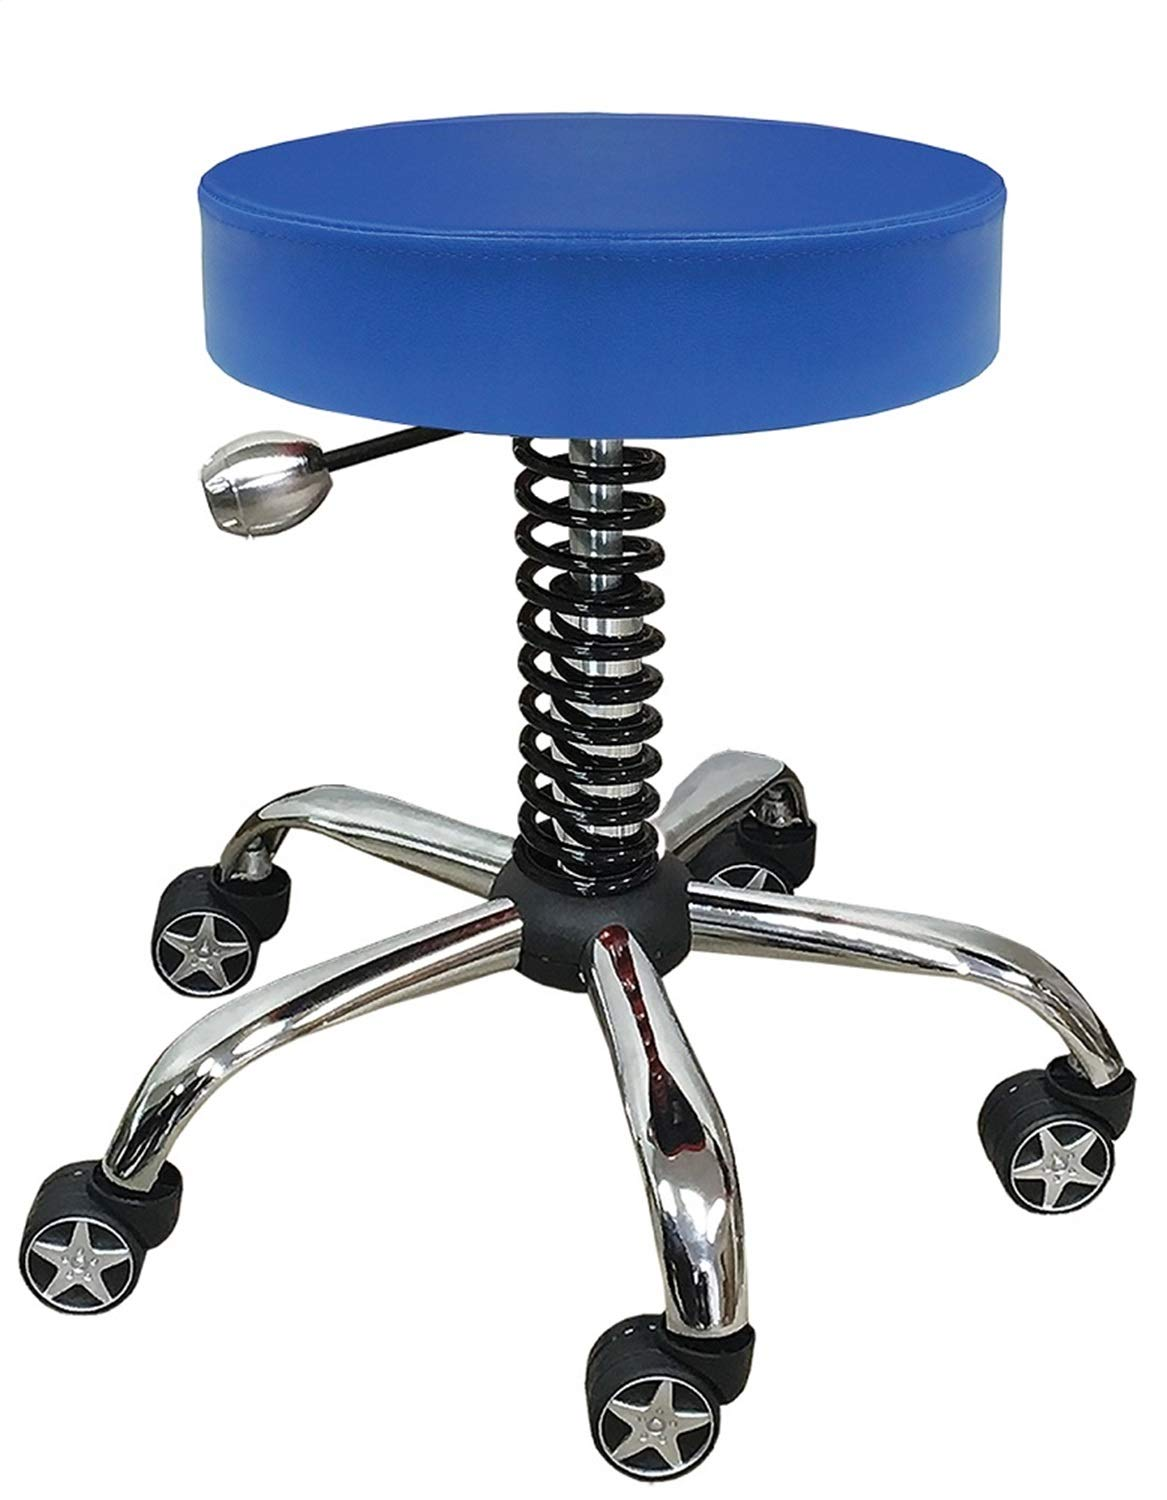 Pitstop RGS3500N Blue Rolling Garage Stool by Pitstop